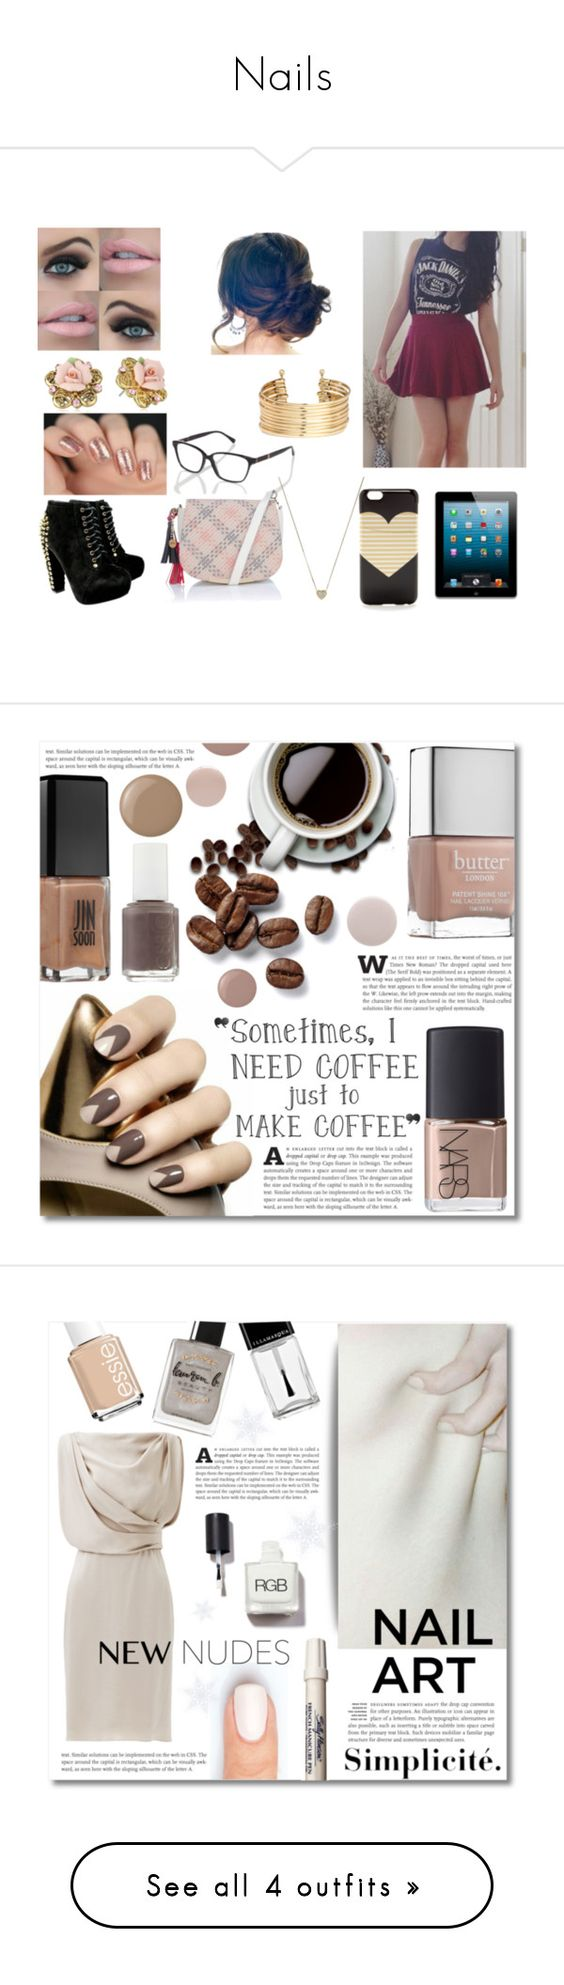 """""""Nails"""" by idakotajohnson14 ❤ liked on Polyvore featuring Ted Baker, J.Crew, Michael Kors, Lipsy, Marie Meili, 1928, Anastasia Beverly Hills, H&M, beauty and NARS Cosmetics"""